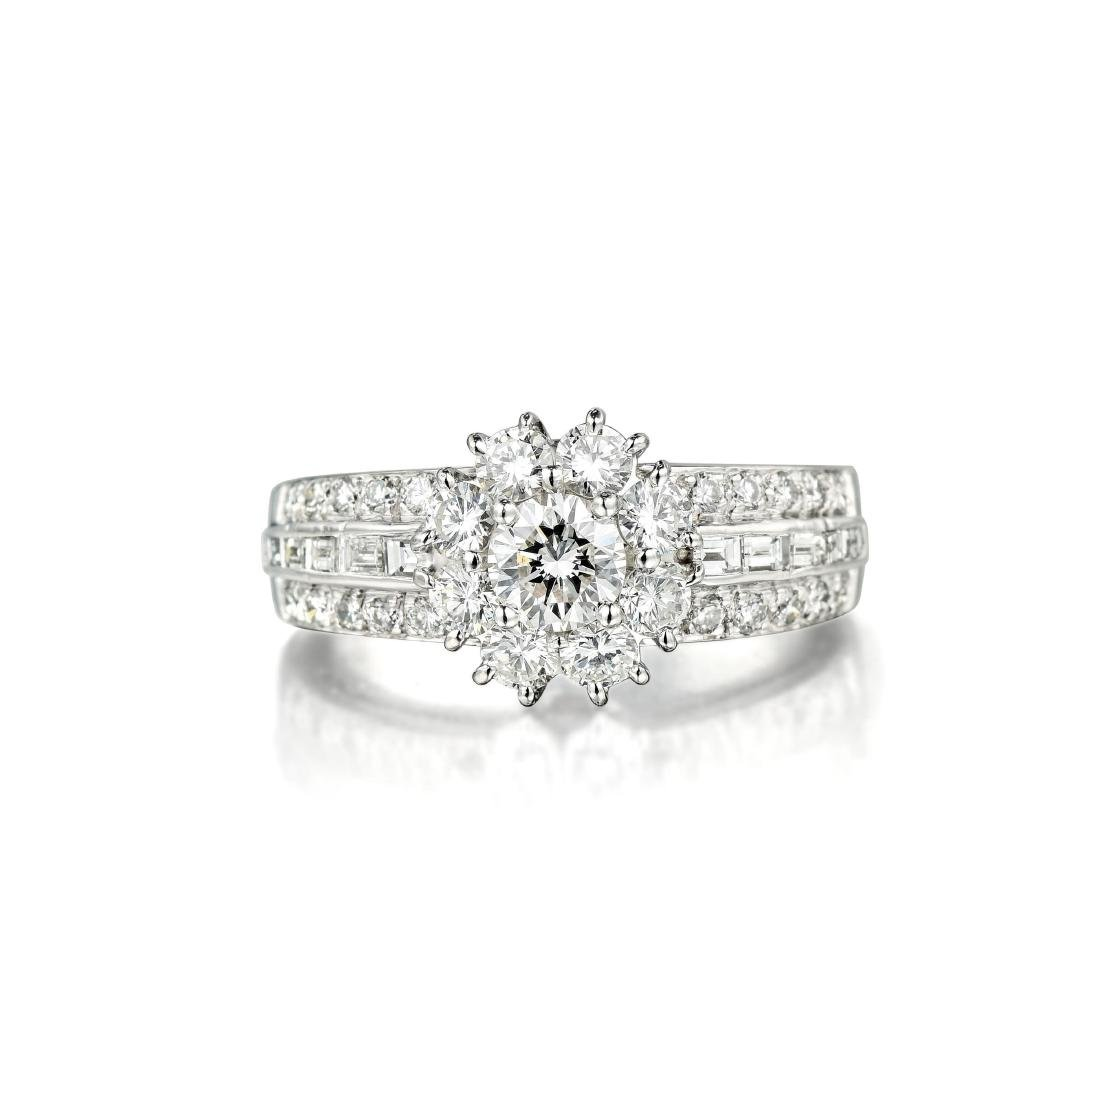 Van Cleef & Arpels Snowflake Diamond Ring